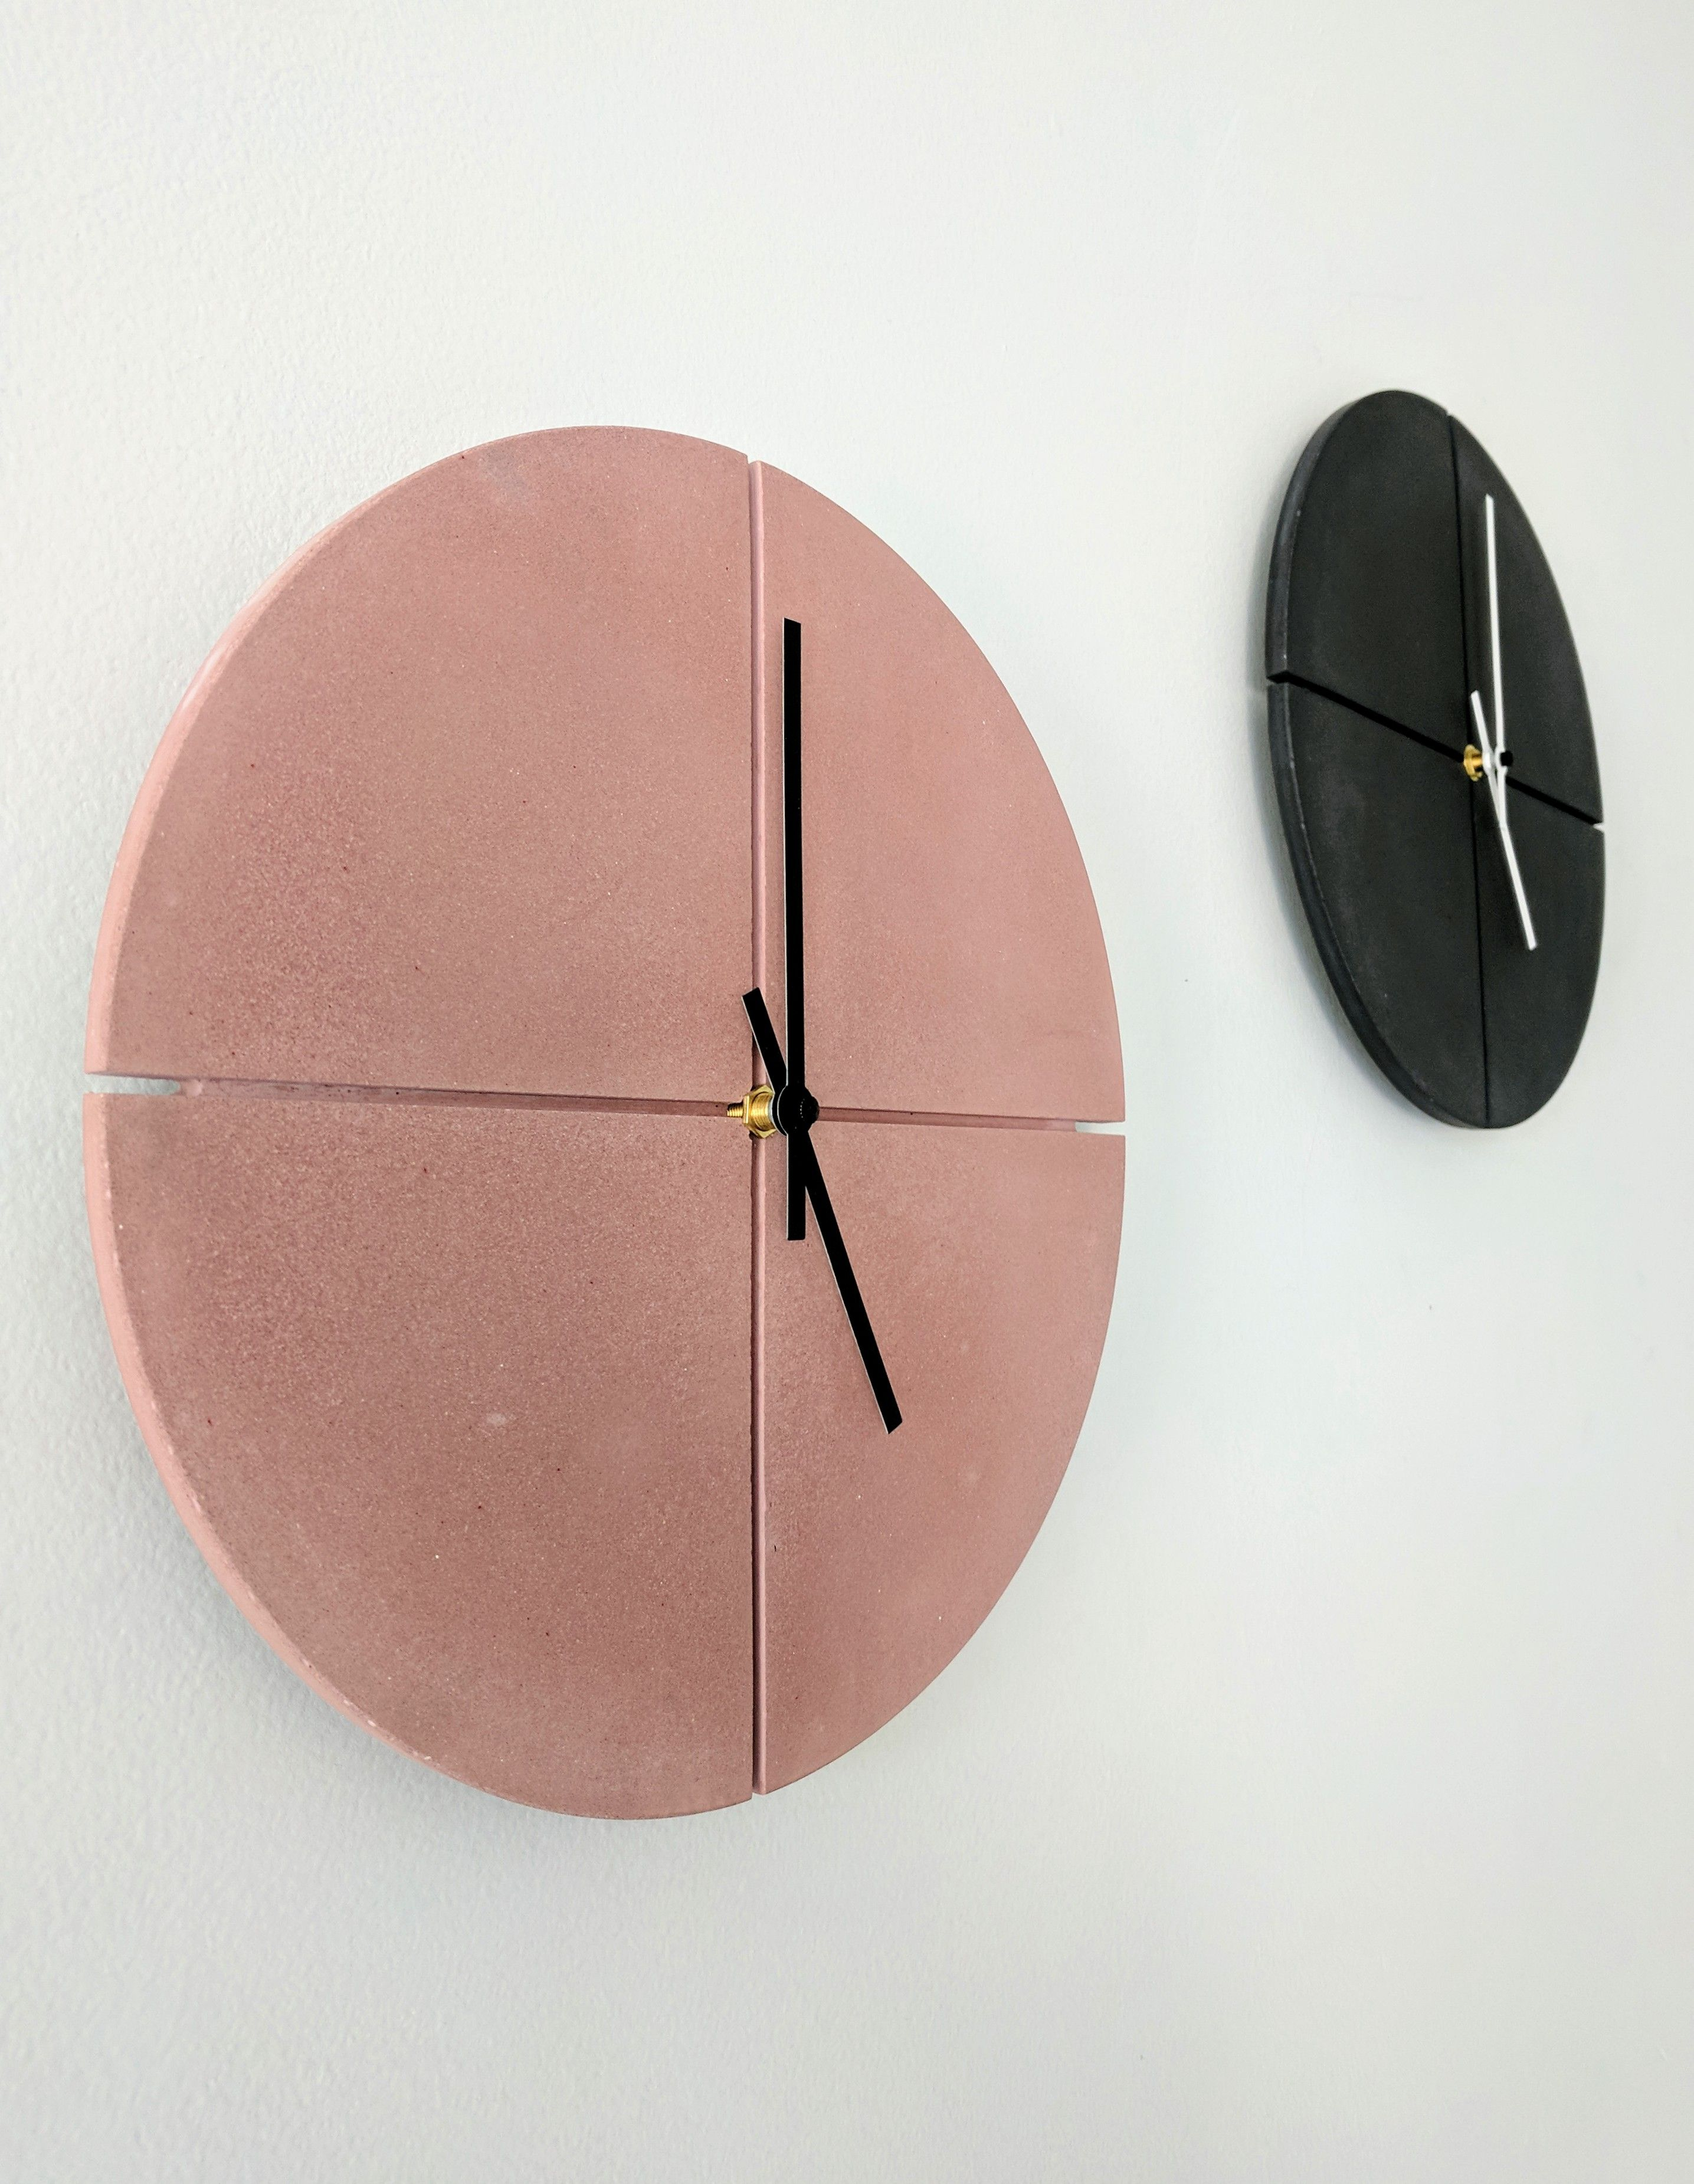 Modern Wall Clock 11 Concrete Clock Round Industrial Etsy In 2020 Contemporary Clocks Handmade Home Decor Urban Industrial Decor